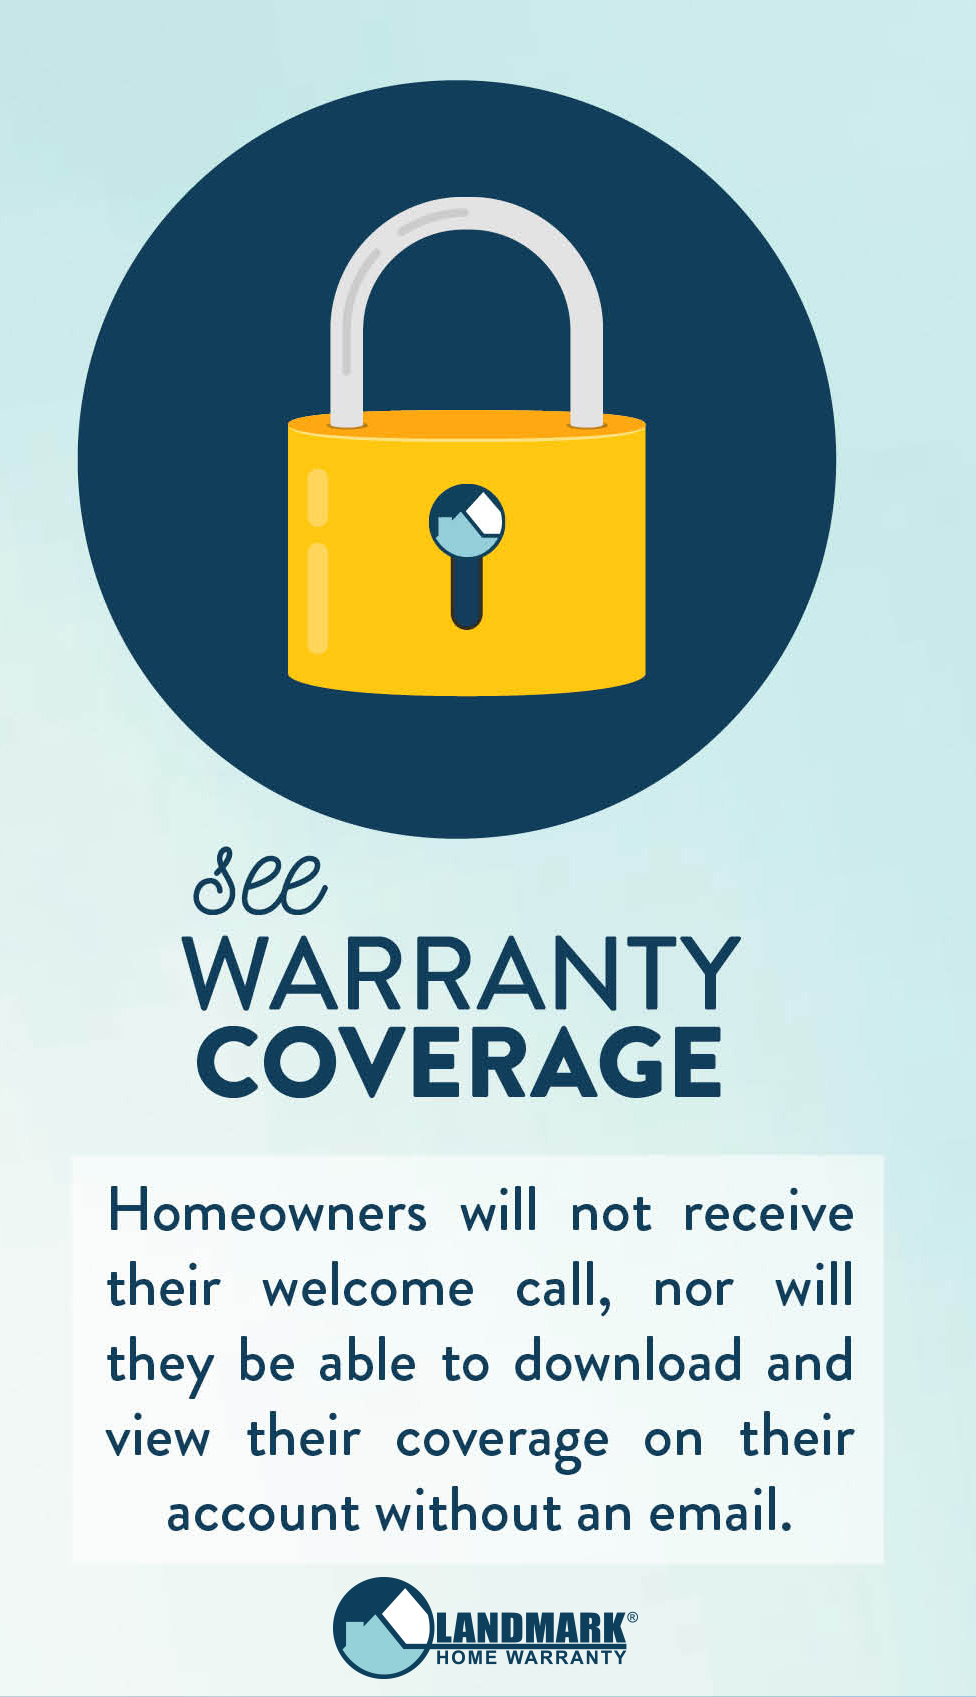 Without an email, homeowners cannot see their home warranty coverage online.